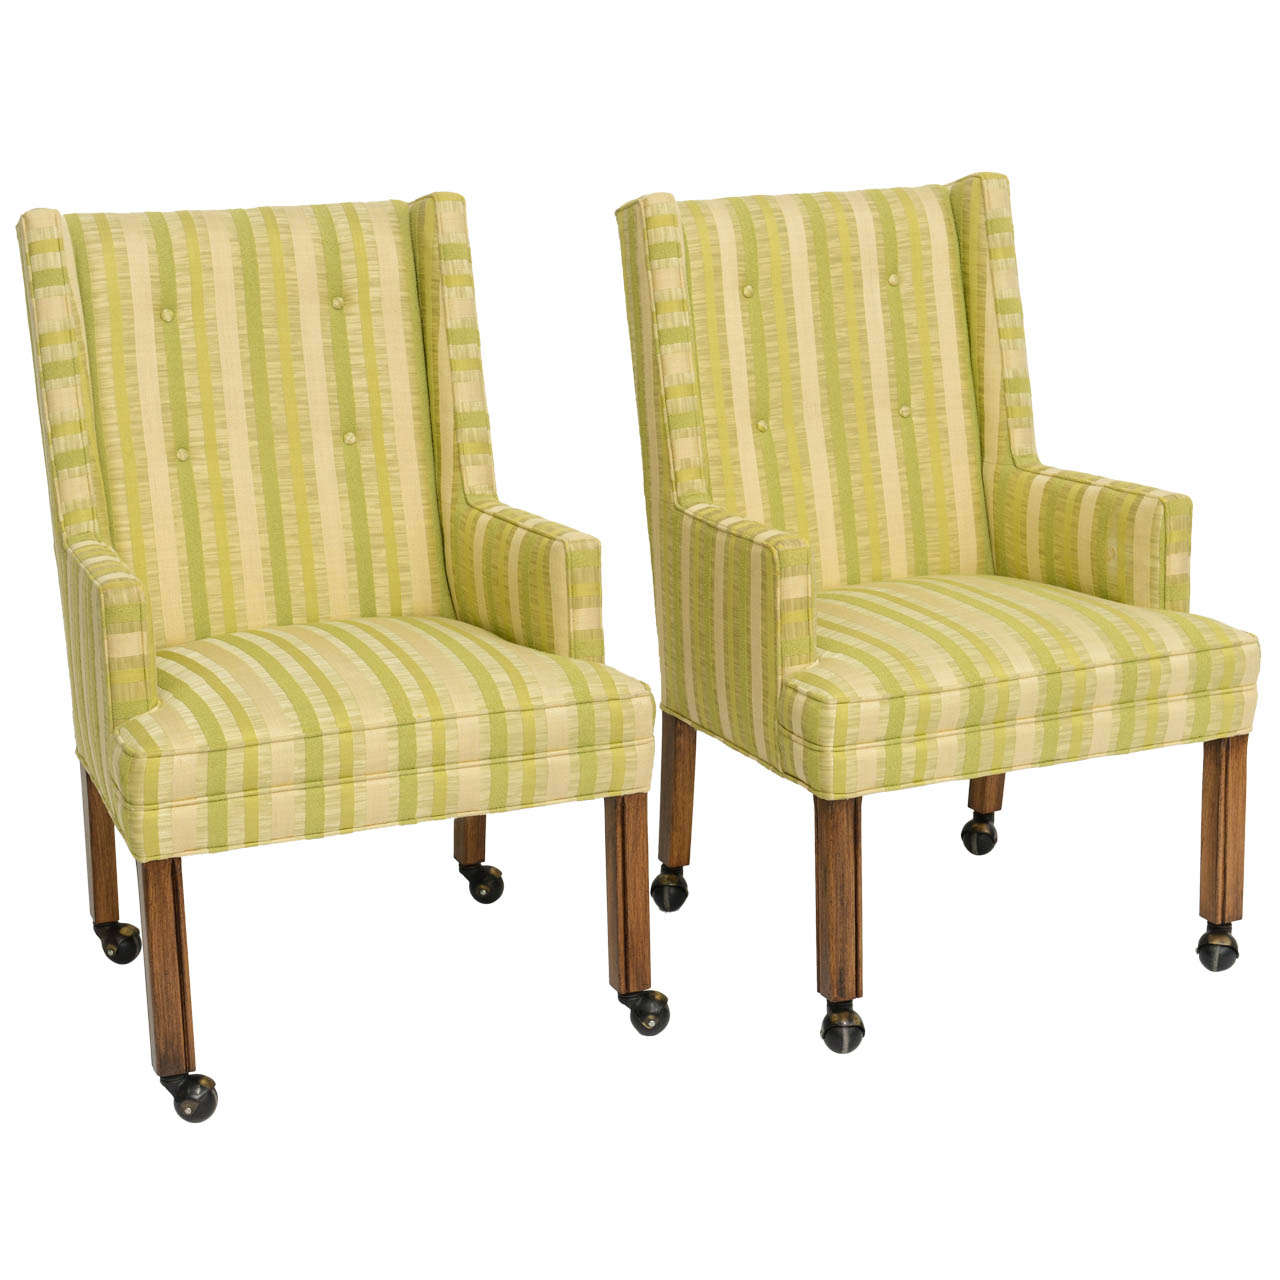 Pair of Tailored Edward Wormley Style High Back Armchairs 1